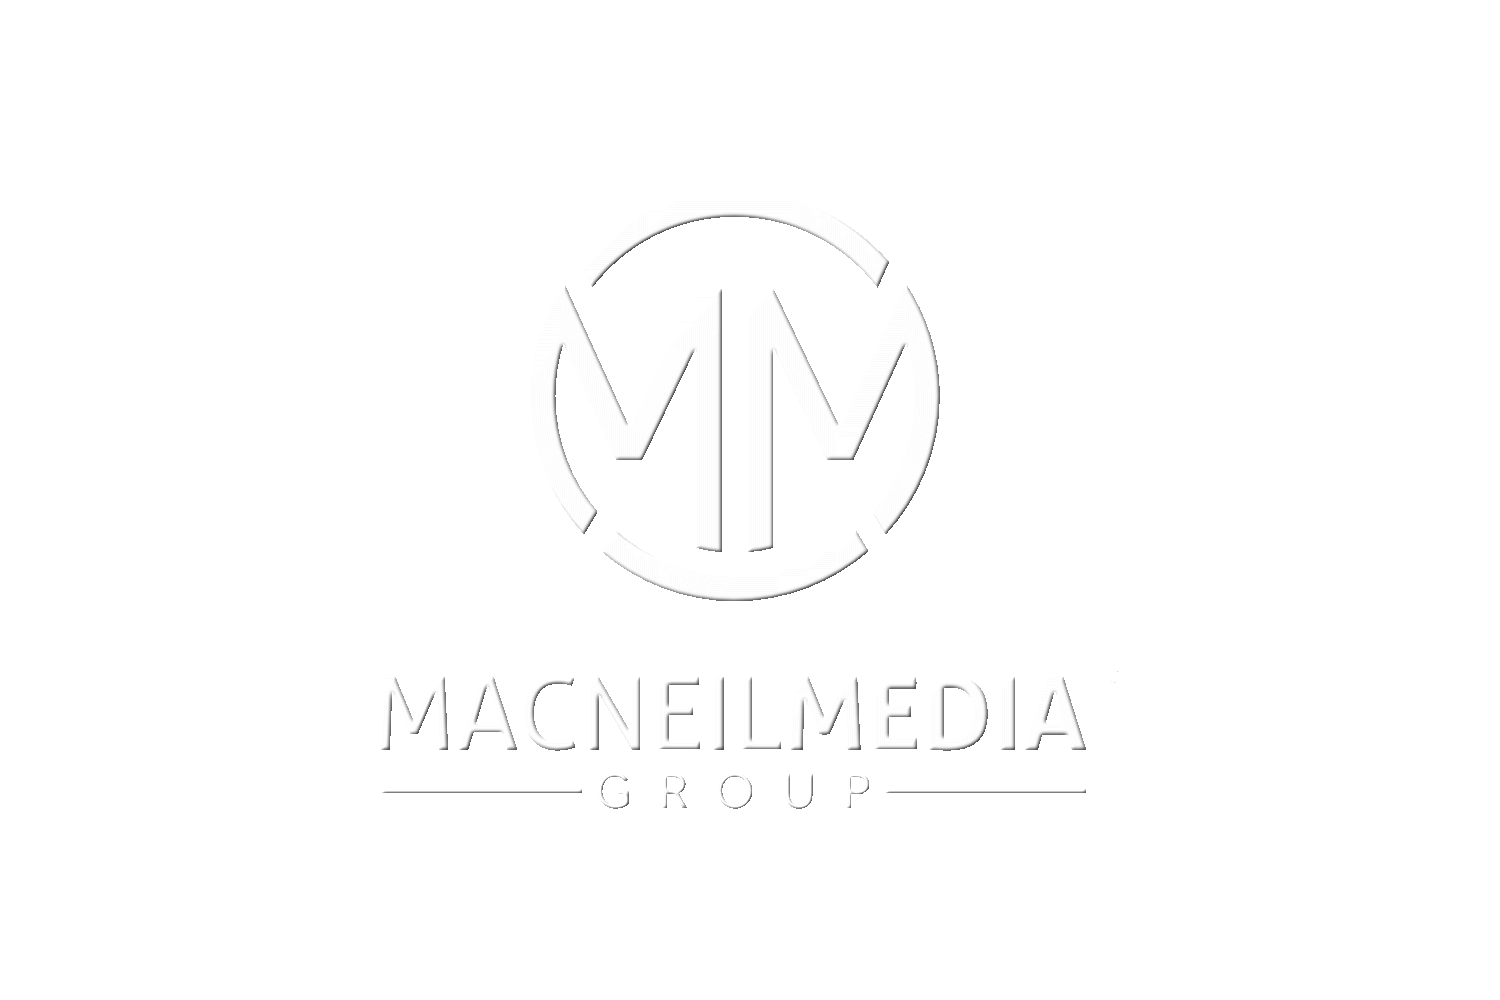 MacNeil Media Group, LLC